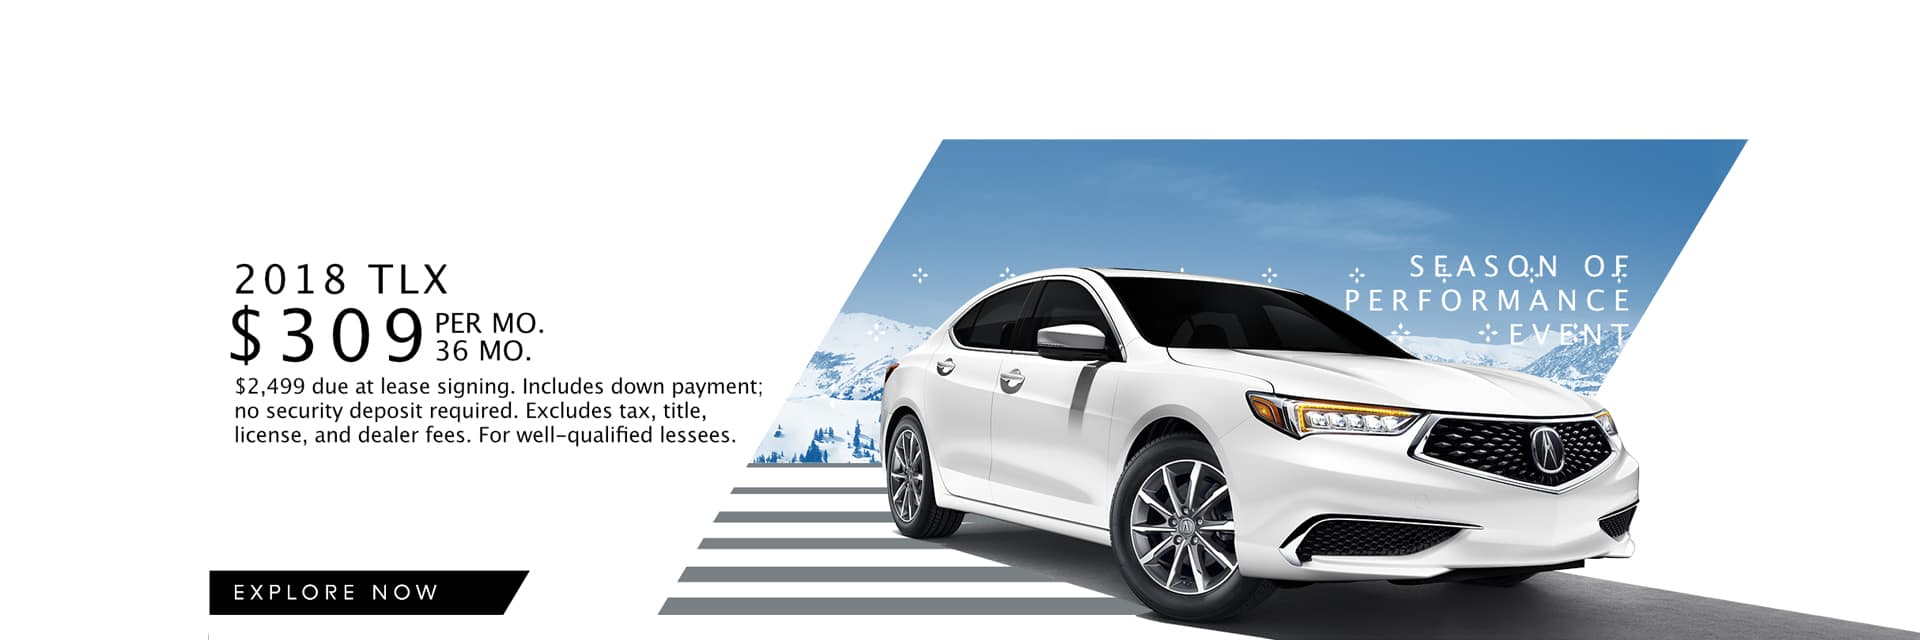 2018 TLX Offer